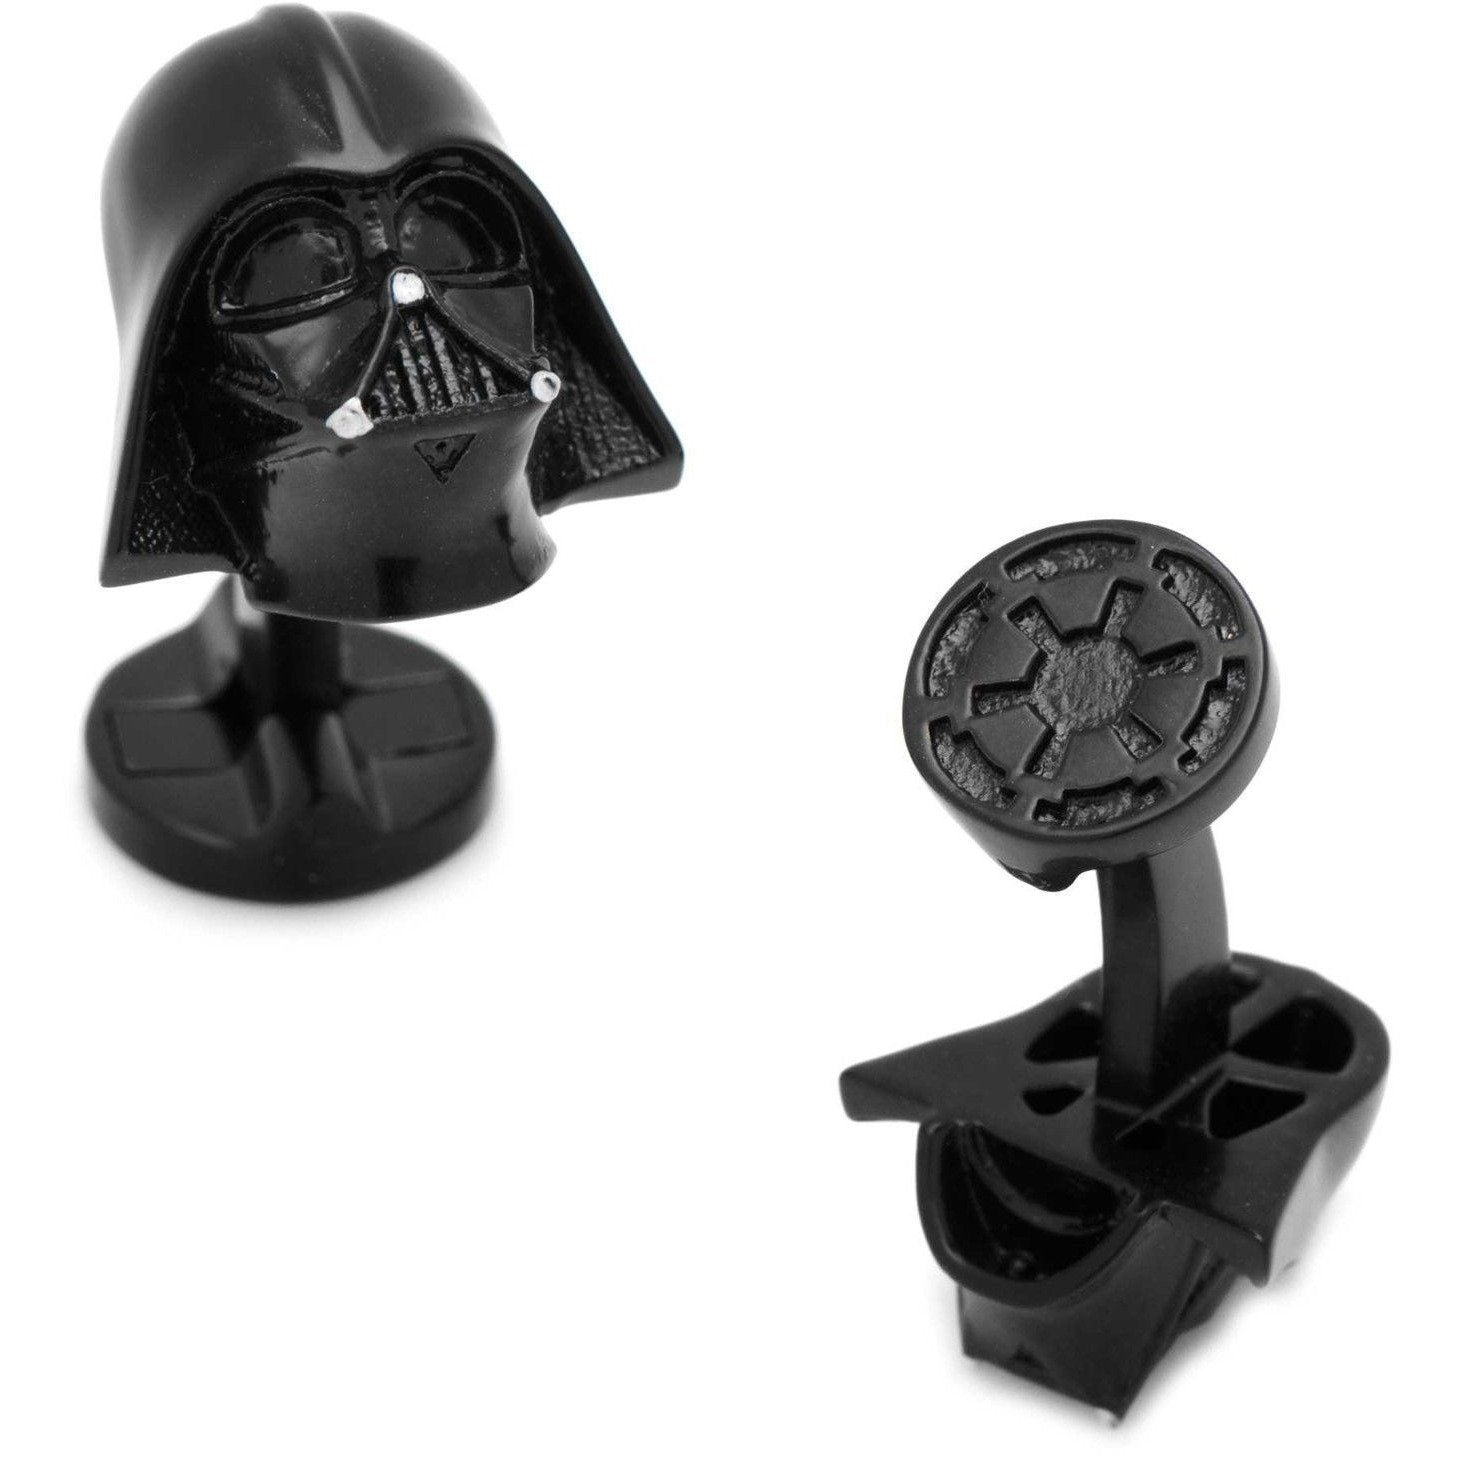 Star Wars 3D Darth Vader Head Cufflinks Novelty Cufflinks Star Wars Star Wars 3D Darth Vader Head Cufflinks